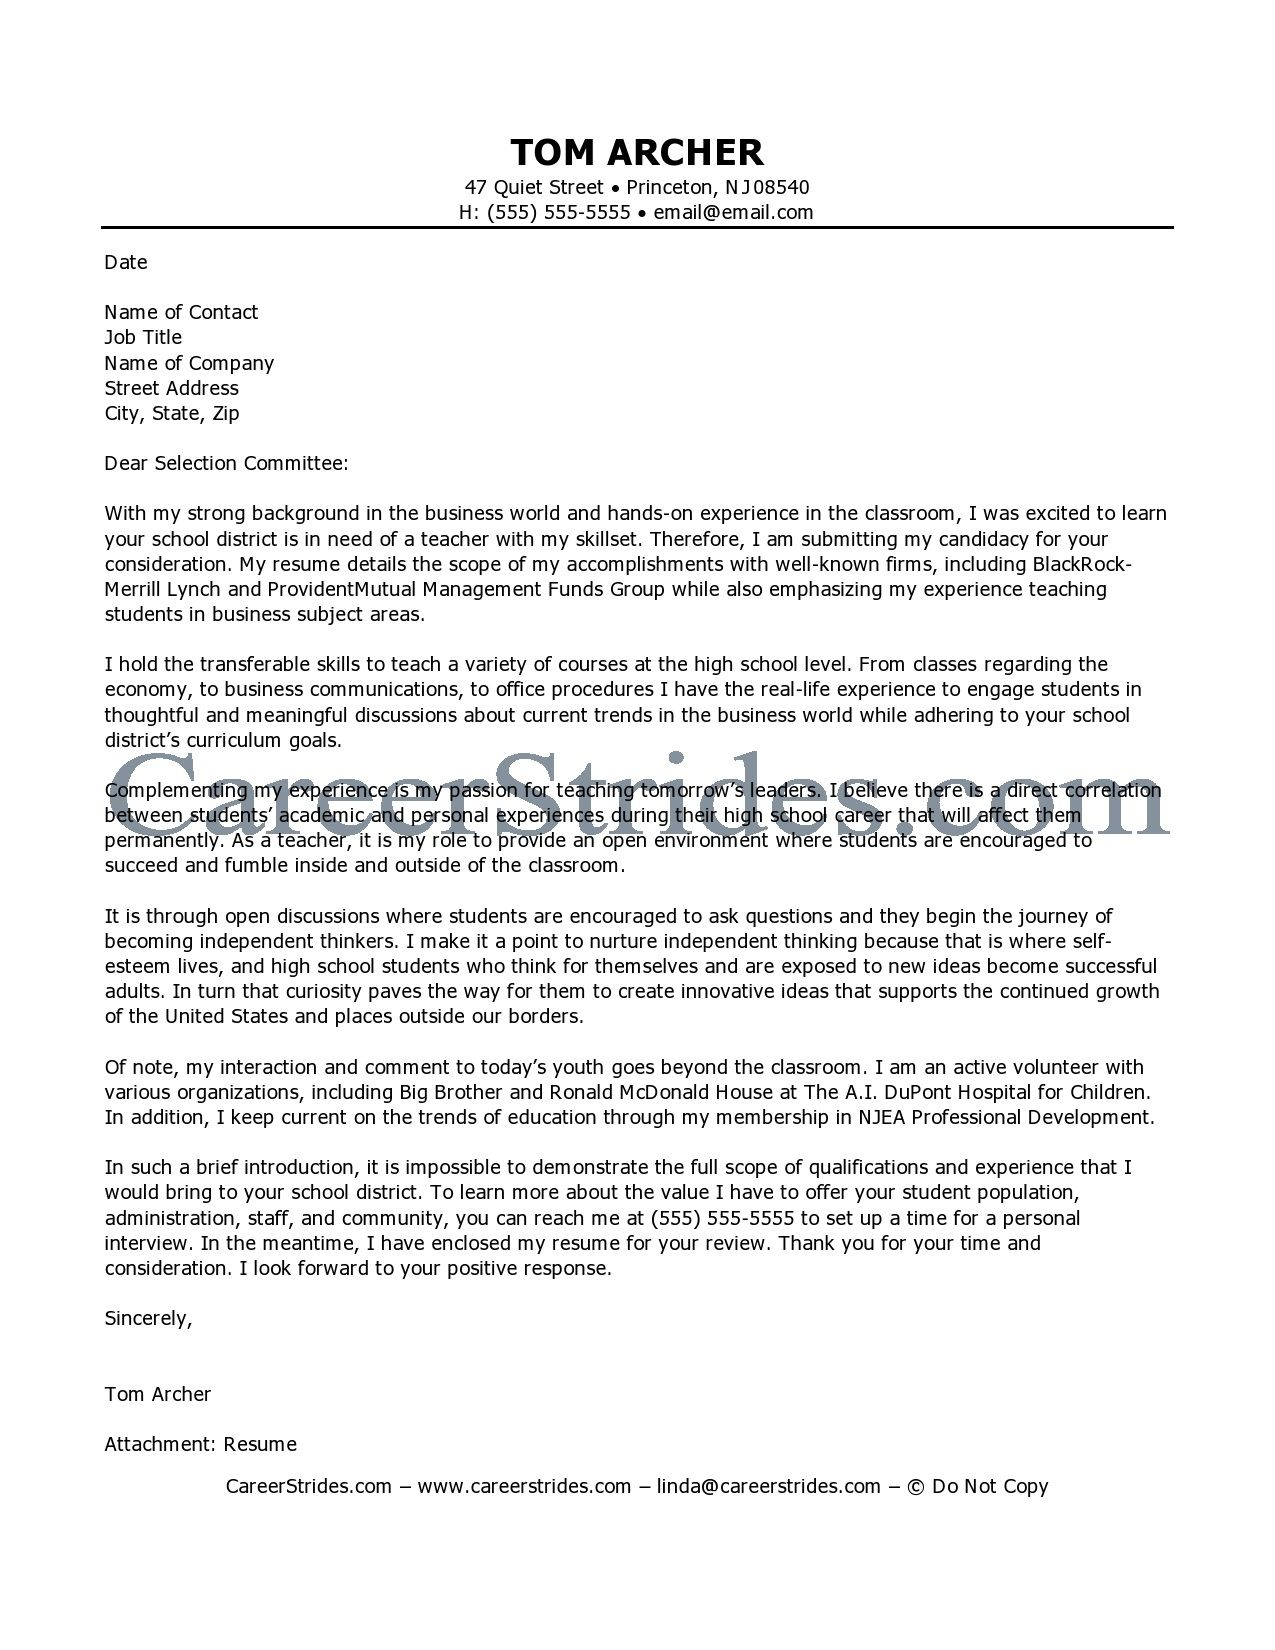 Marvelous Teaching Cover Letters // Careerstrides.comBusiness Teacher. Nursing ...